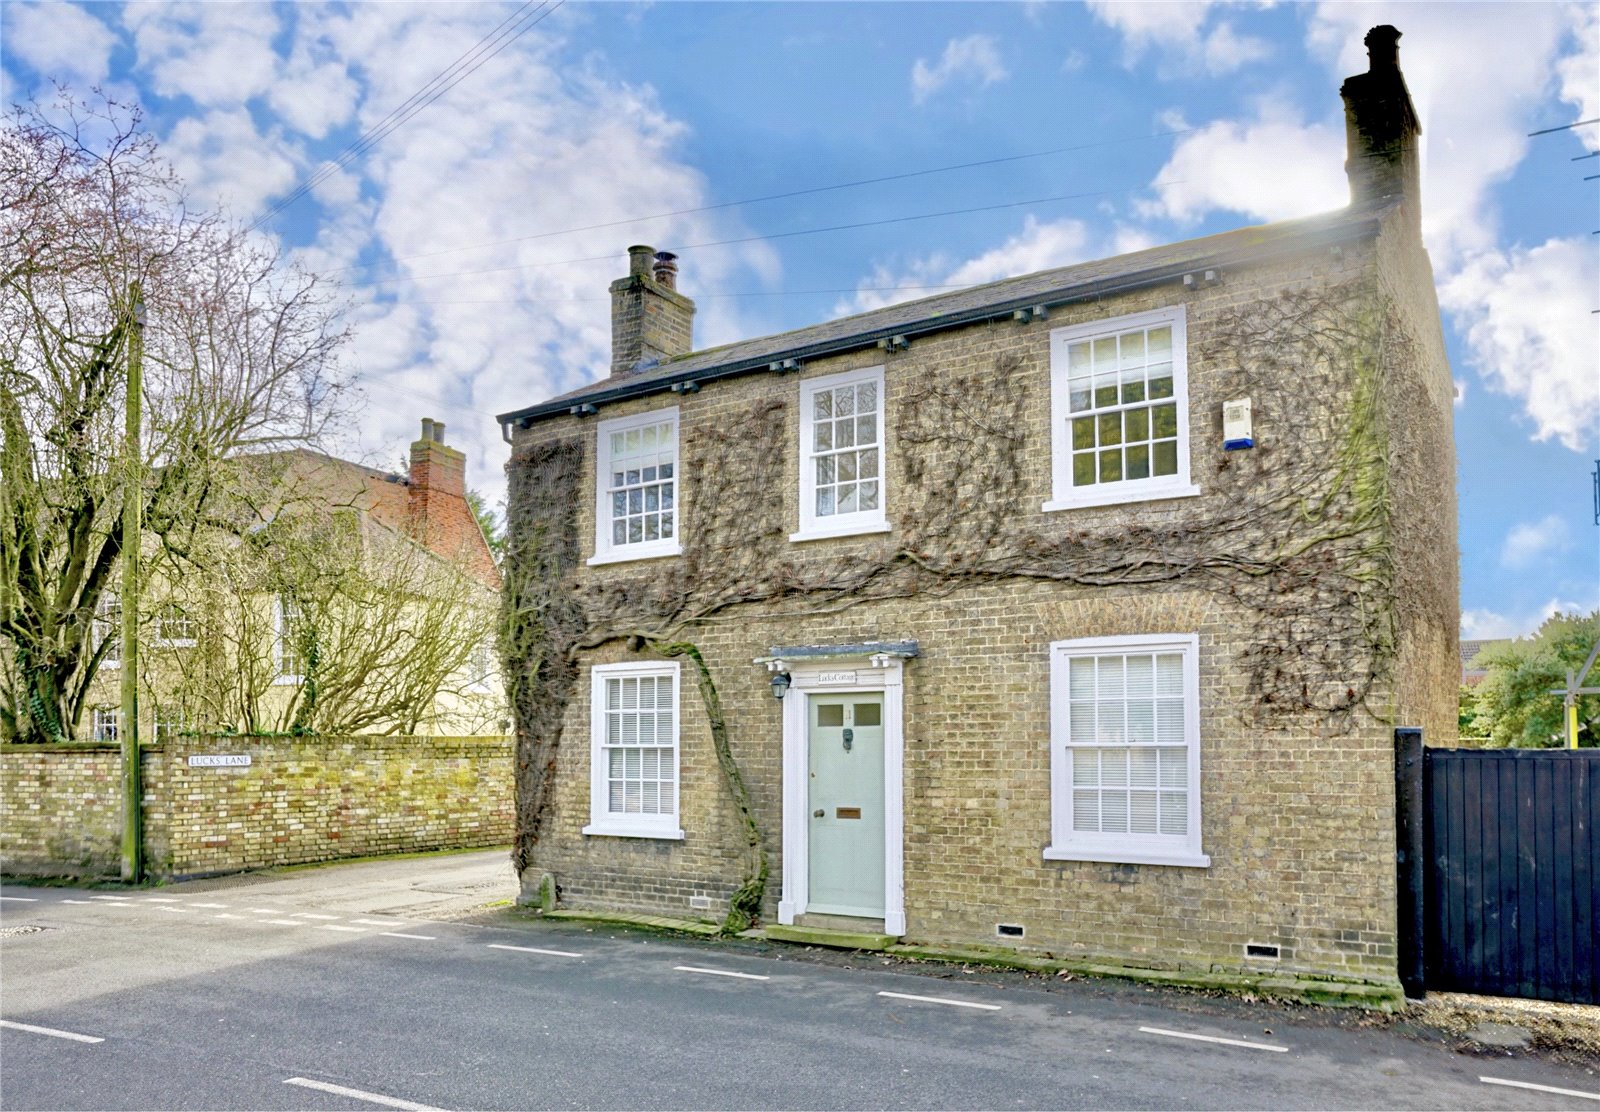 4 bed house for sale in Buckden 0